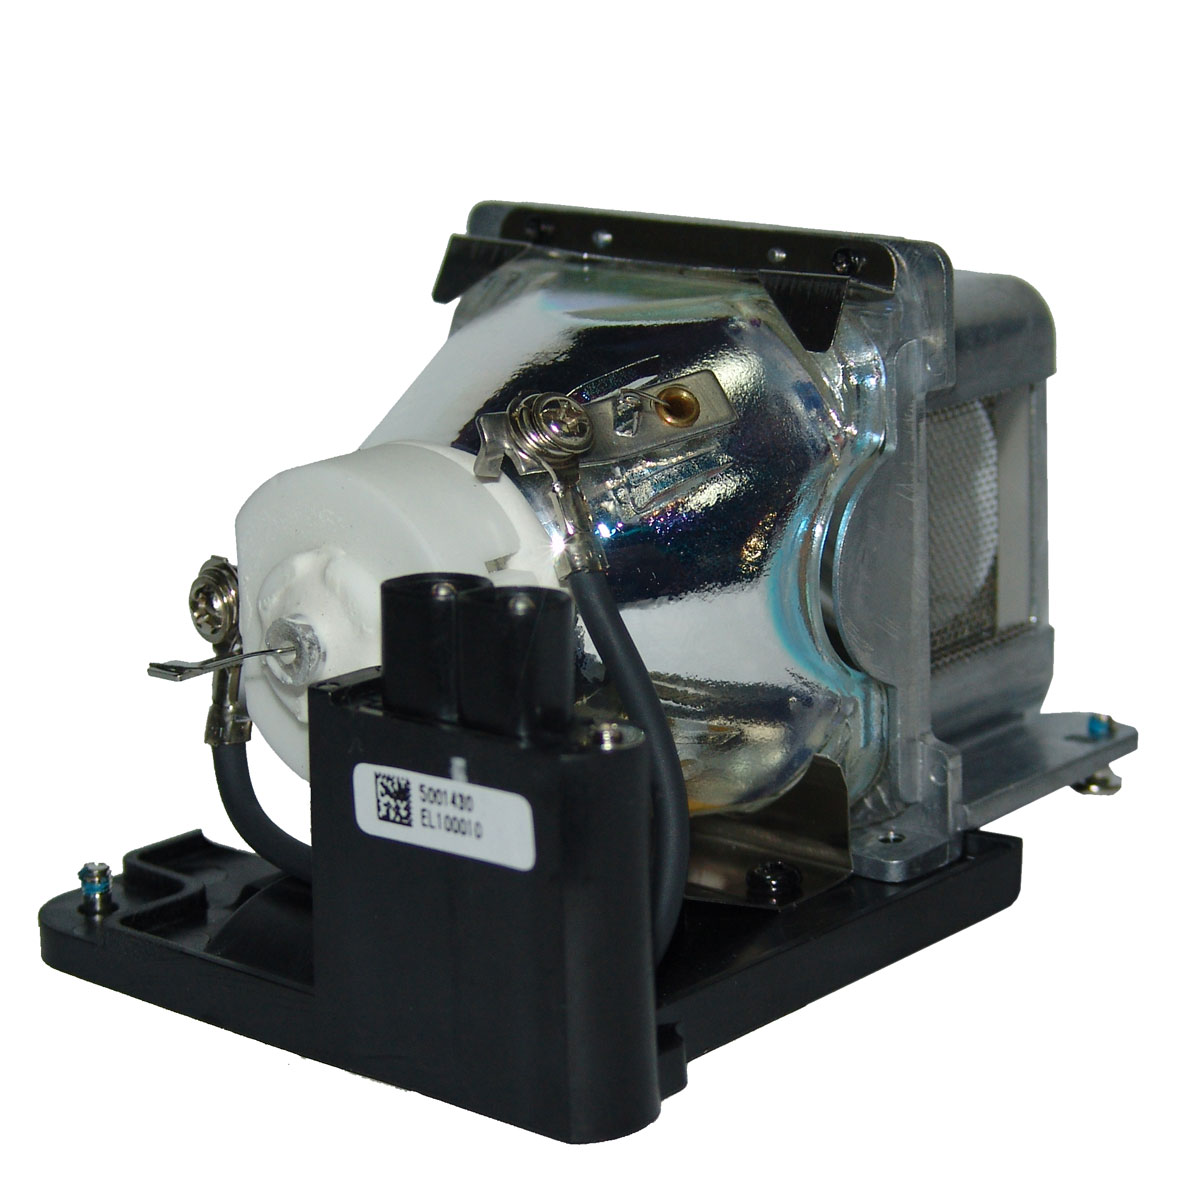 PLC-WXU10N Sanyo Projector Lamp Replacement Projector Lamp Assembly with Genuine Original Ushio Bulb Inside.